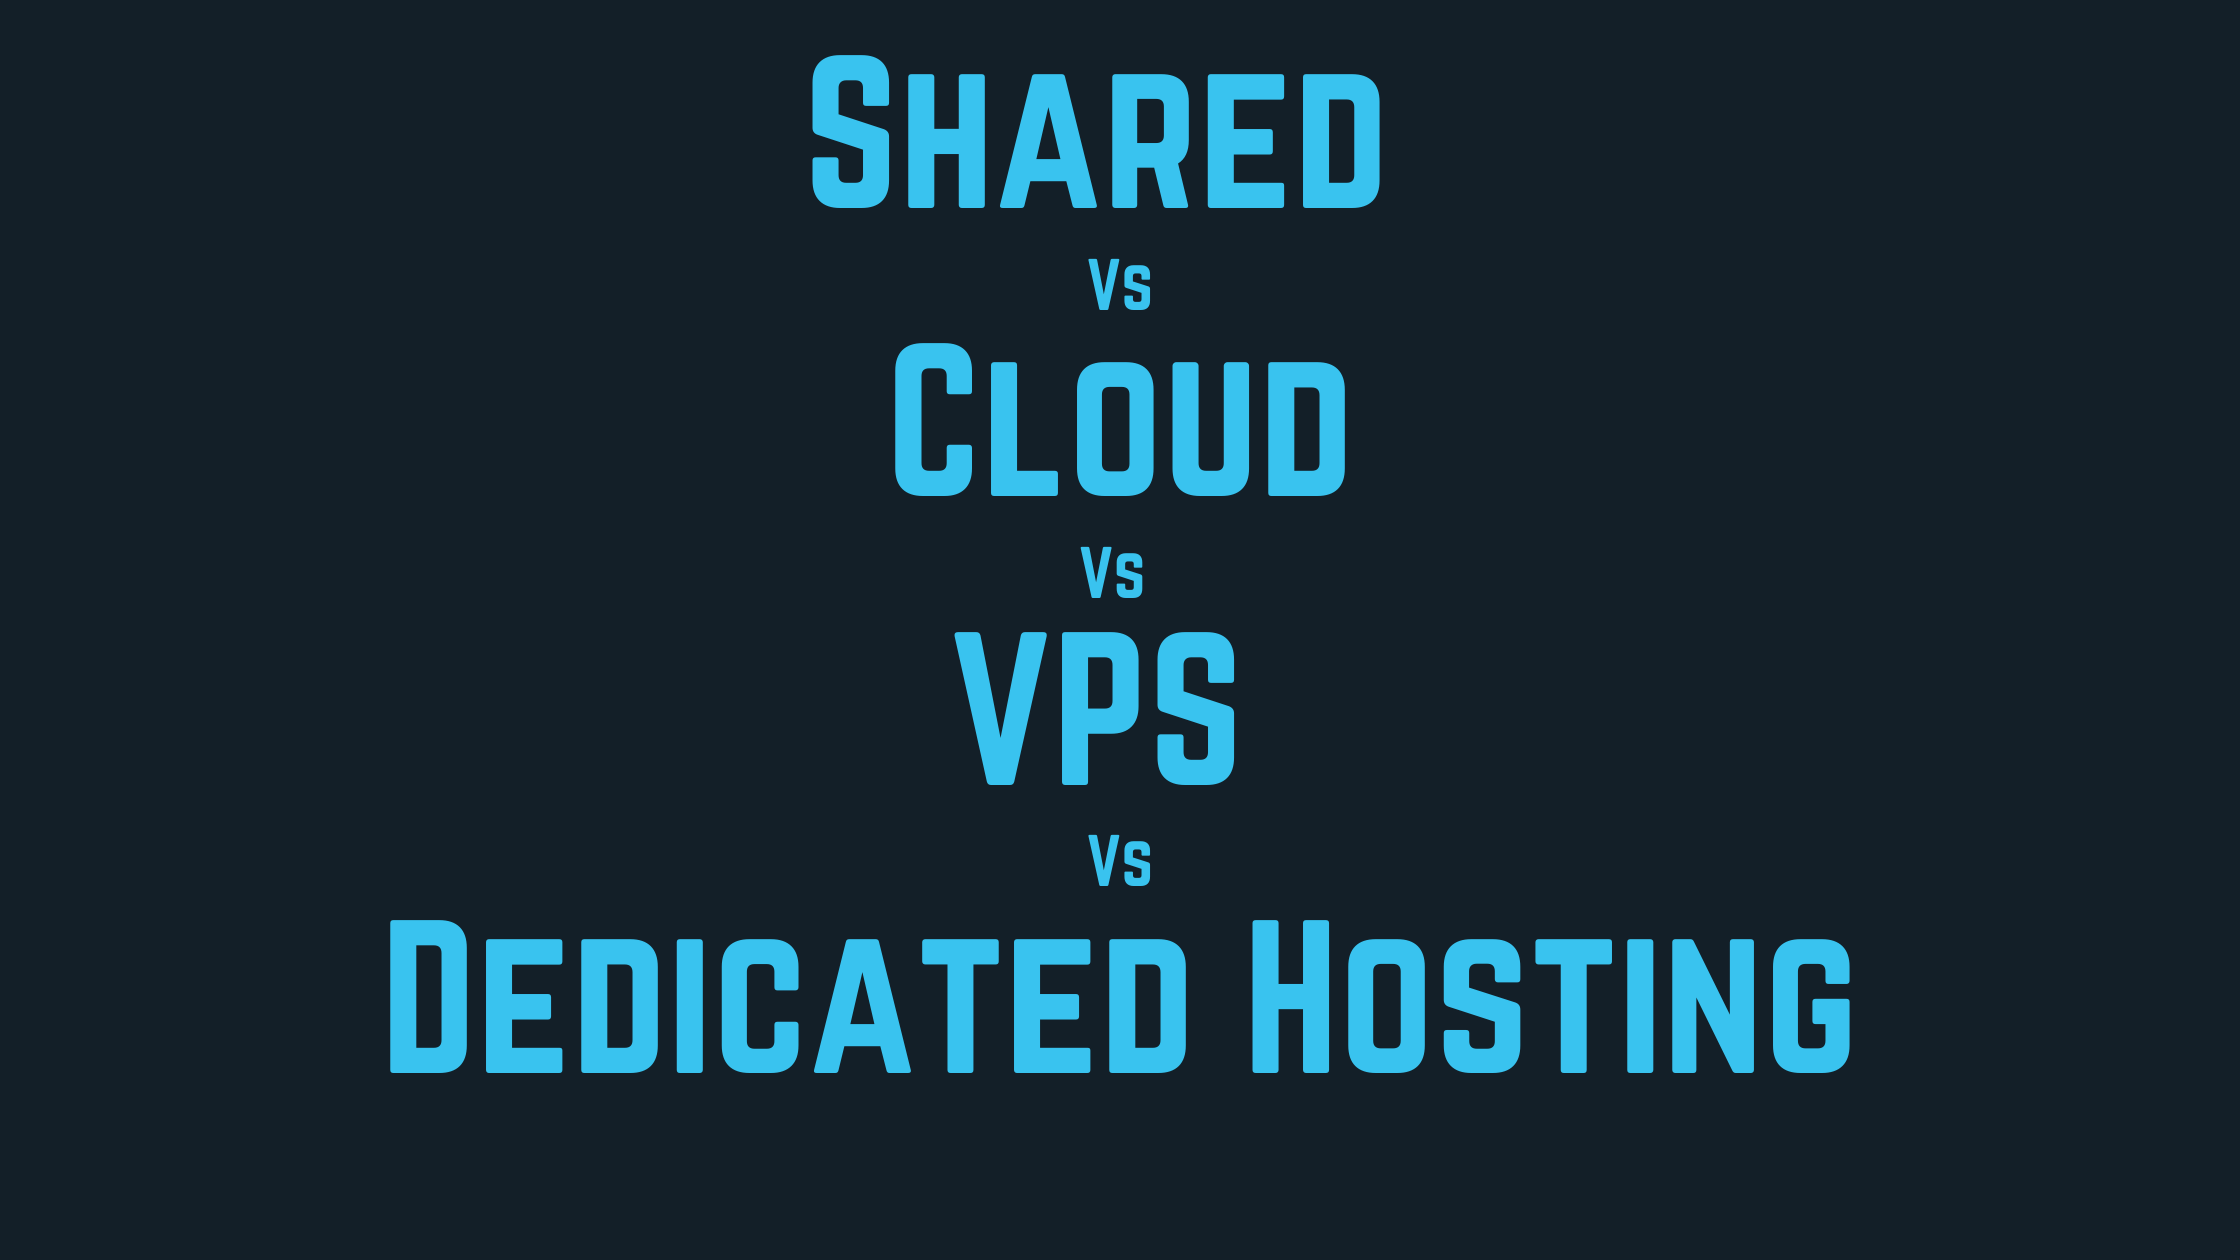 shared vs vps vs cloud vs dedicated hosting